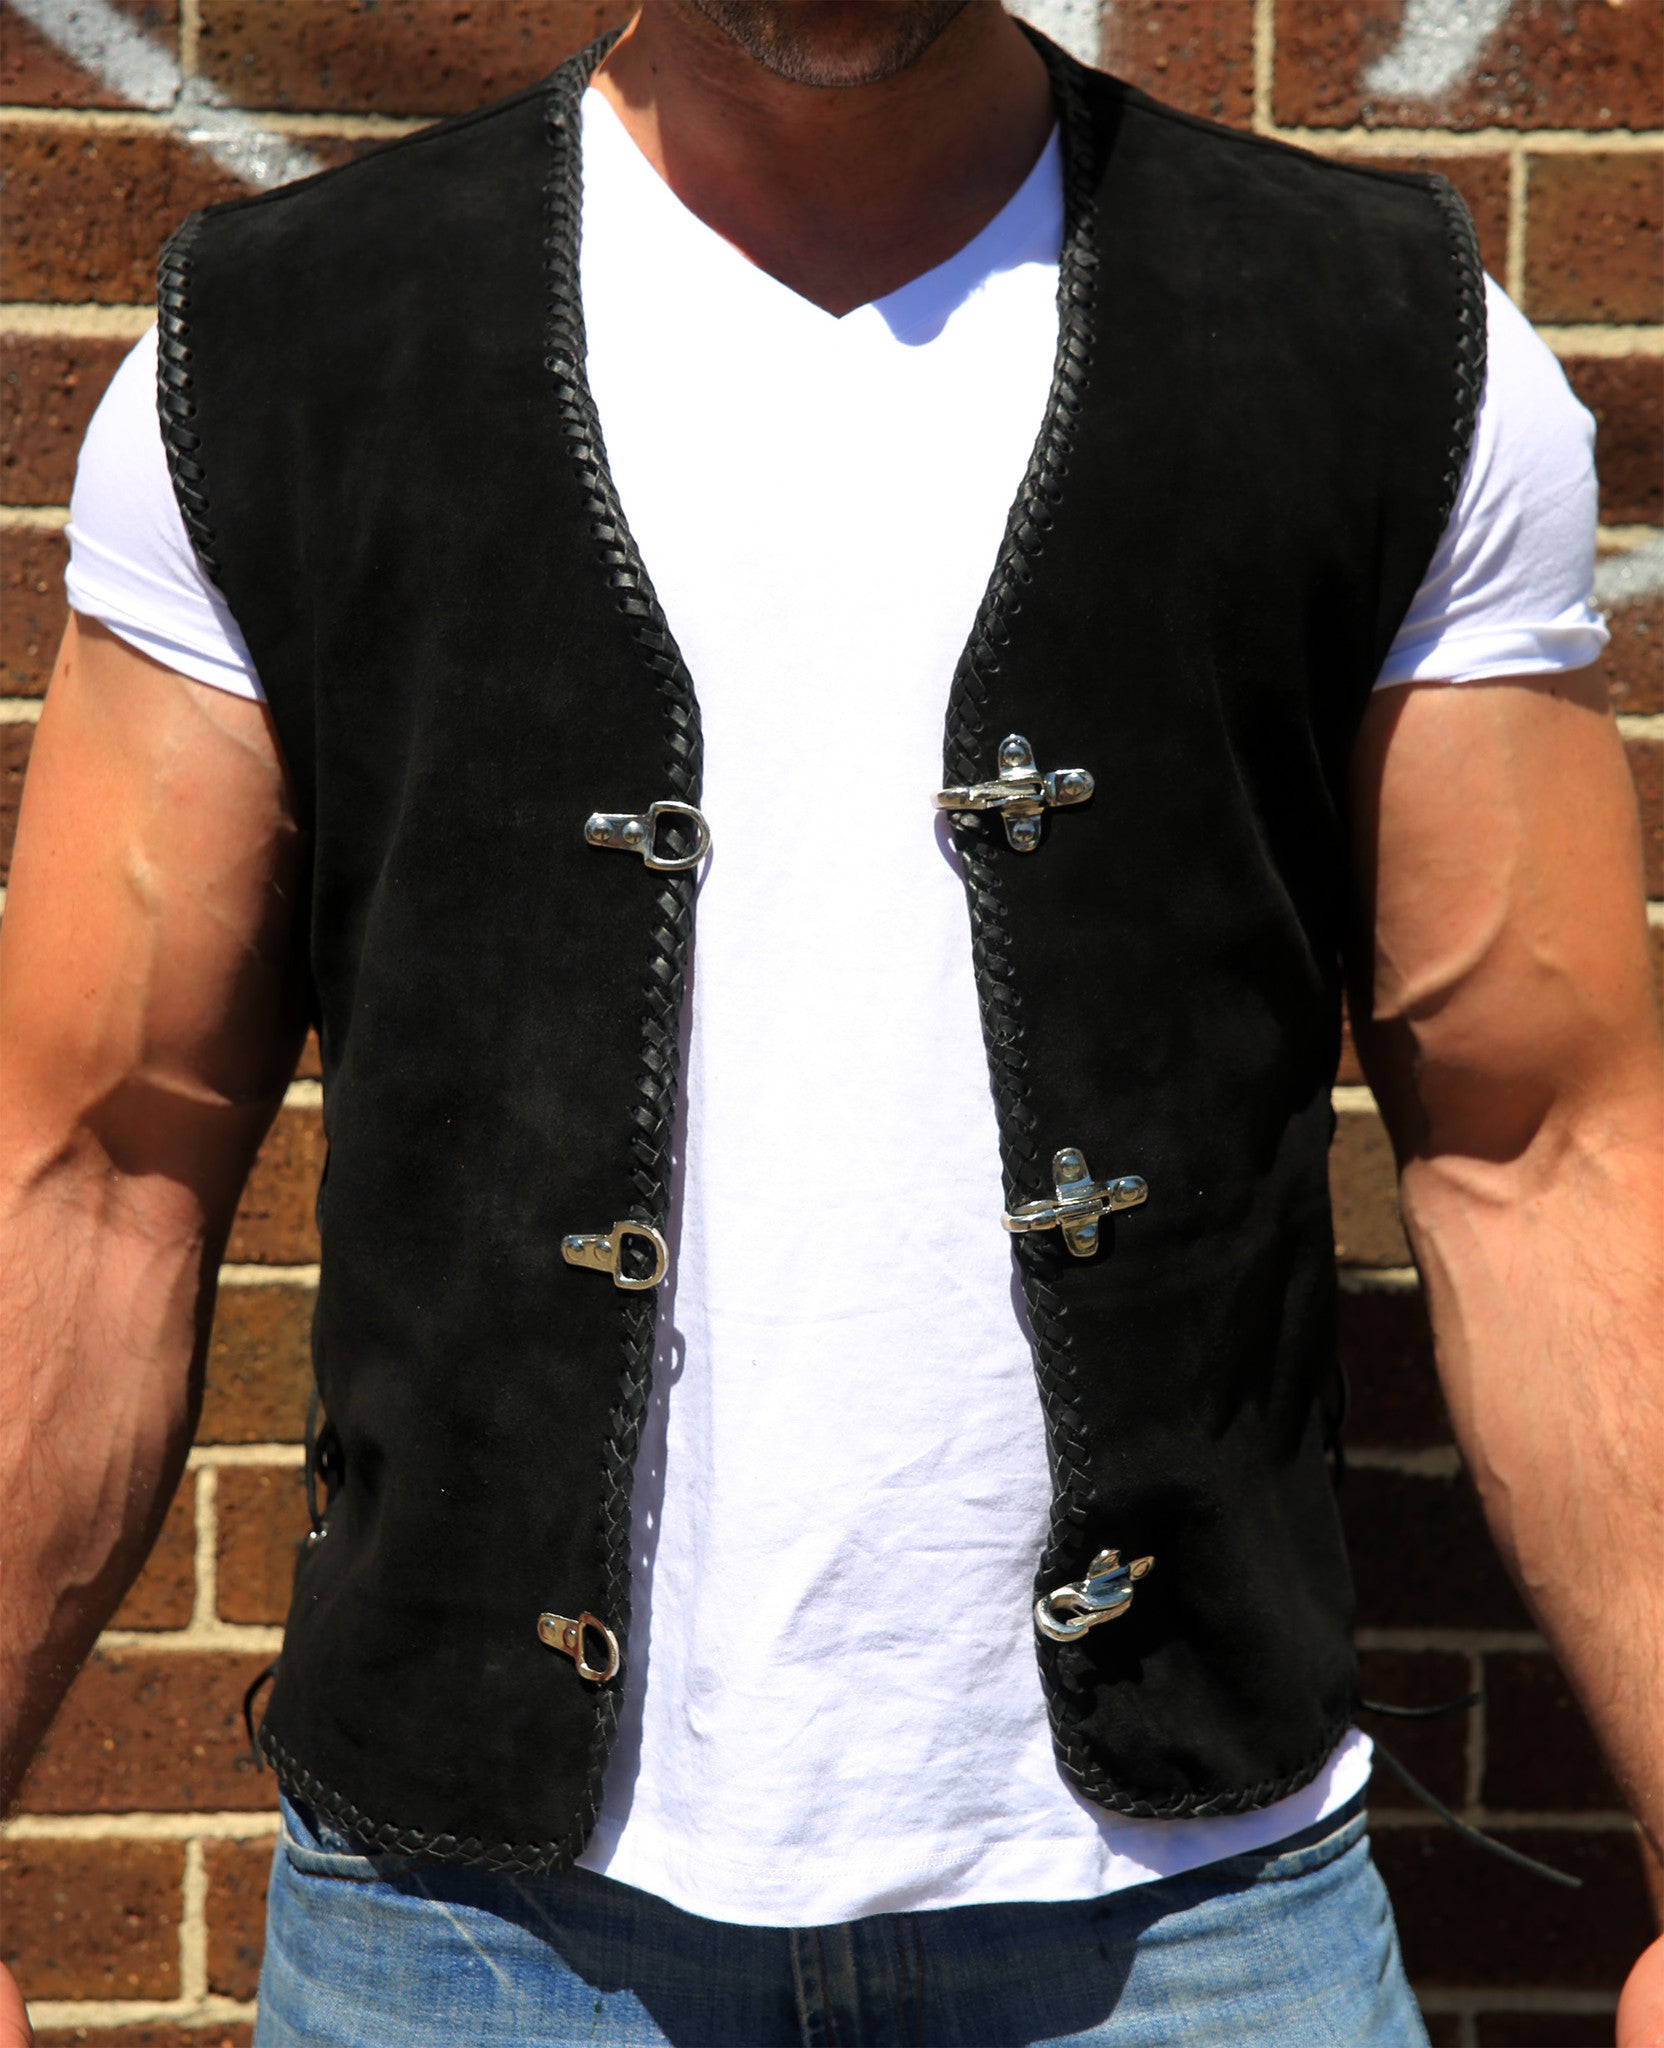 New motorcycle vest is made from heavy-duty cowhide suede leather. Suede biker vest is soft and smooth easy to be worn over a jacket. Available in Full Black .